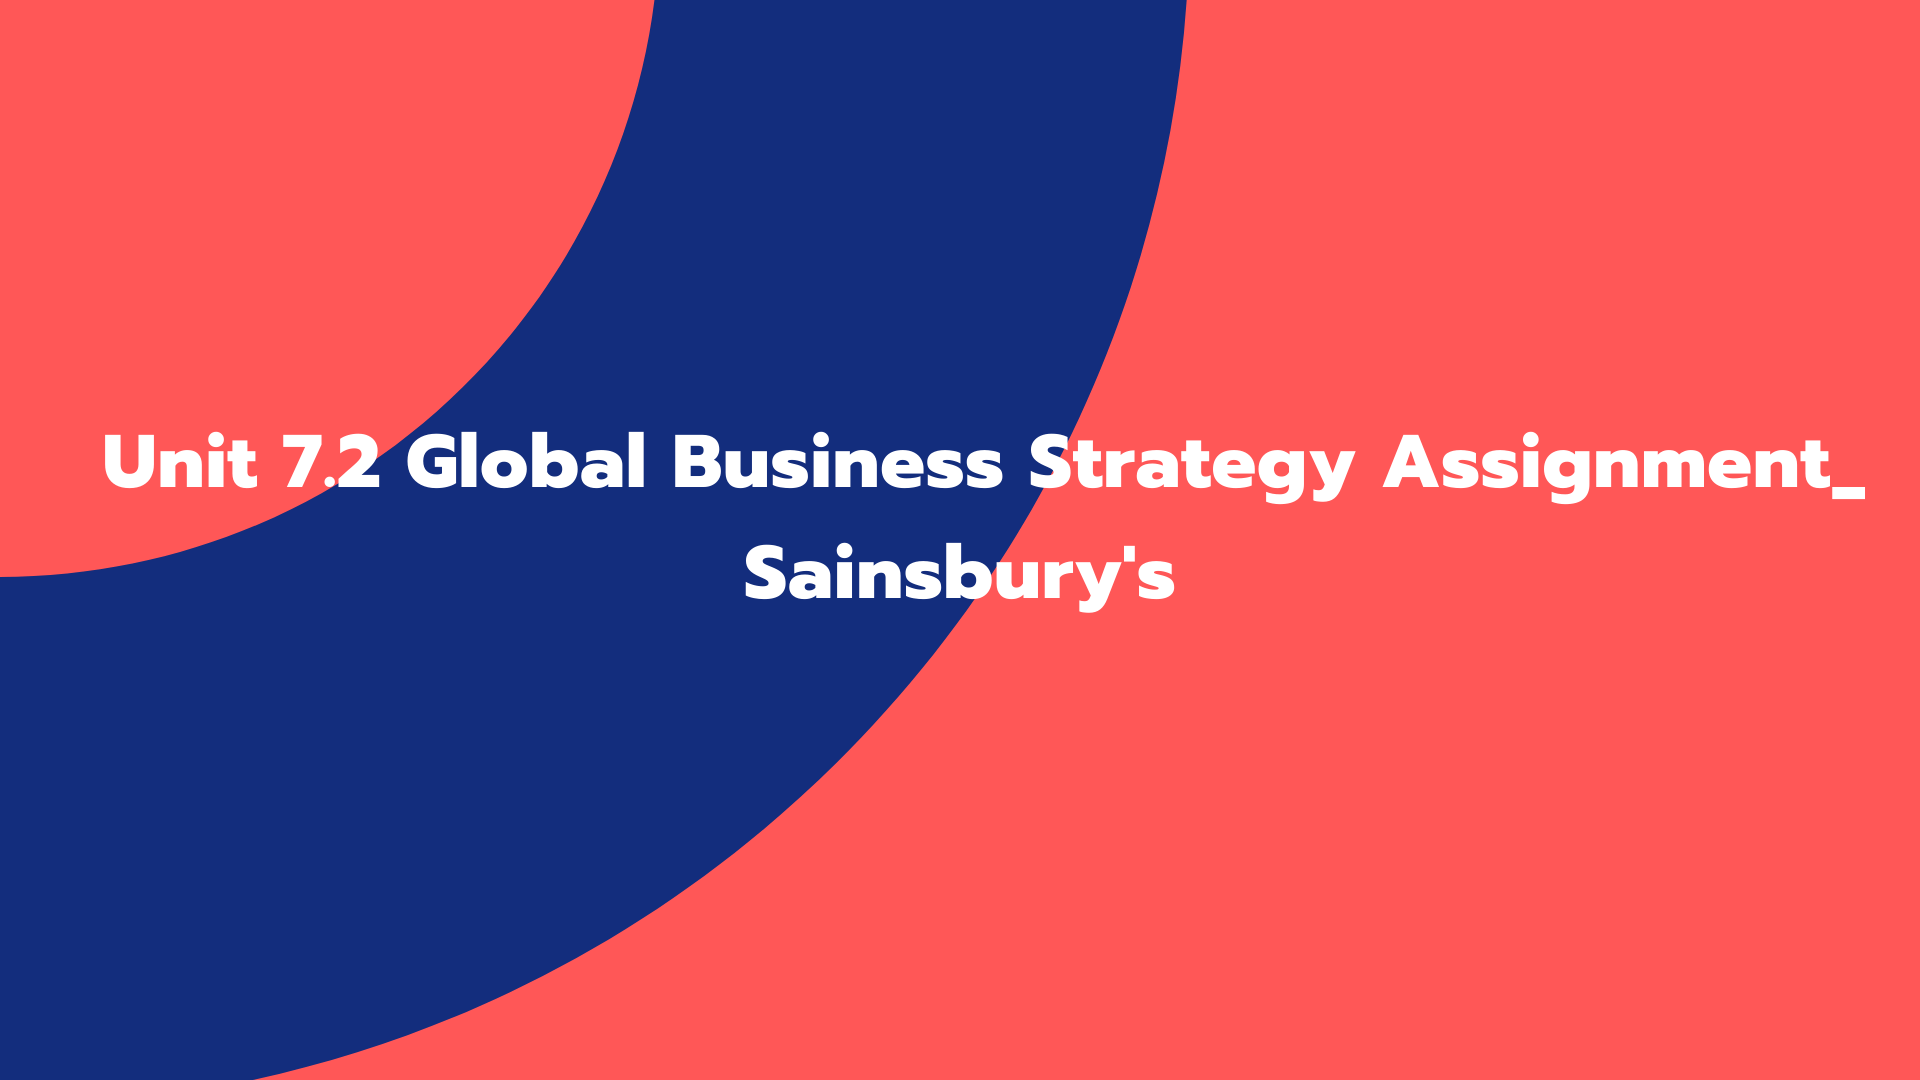 Unit 7.2 Global Business Strategy Assignment_ Sainsbury's